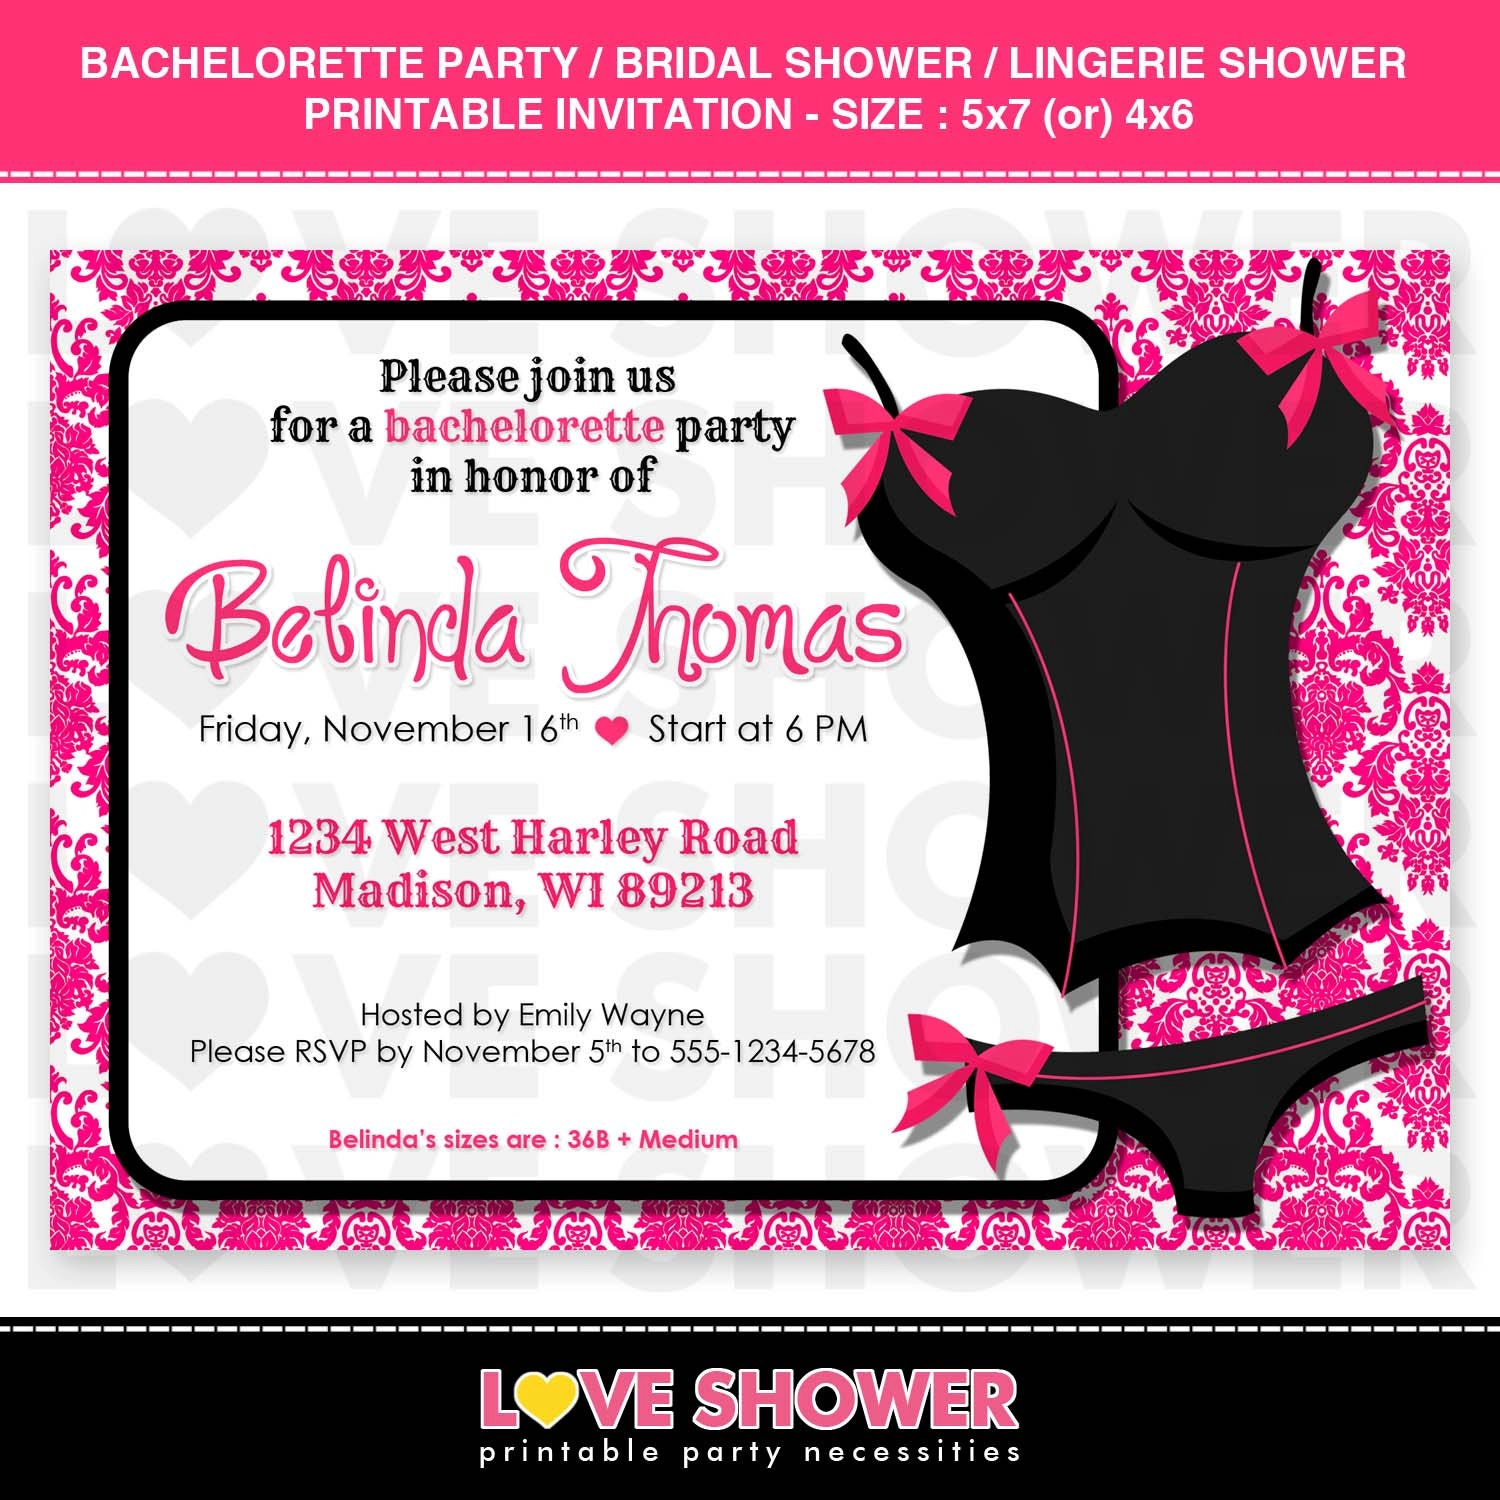 Bachelorette Party Bridal Shower Lingerie Shower Invitation – Lingerie Party Invite